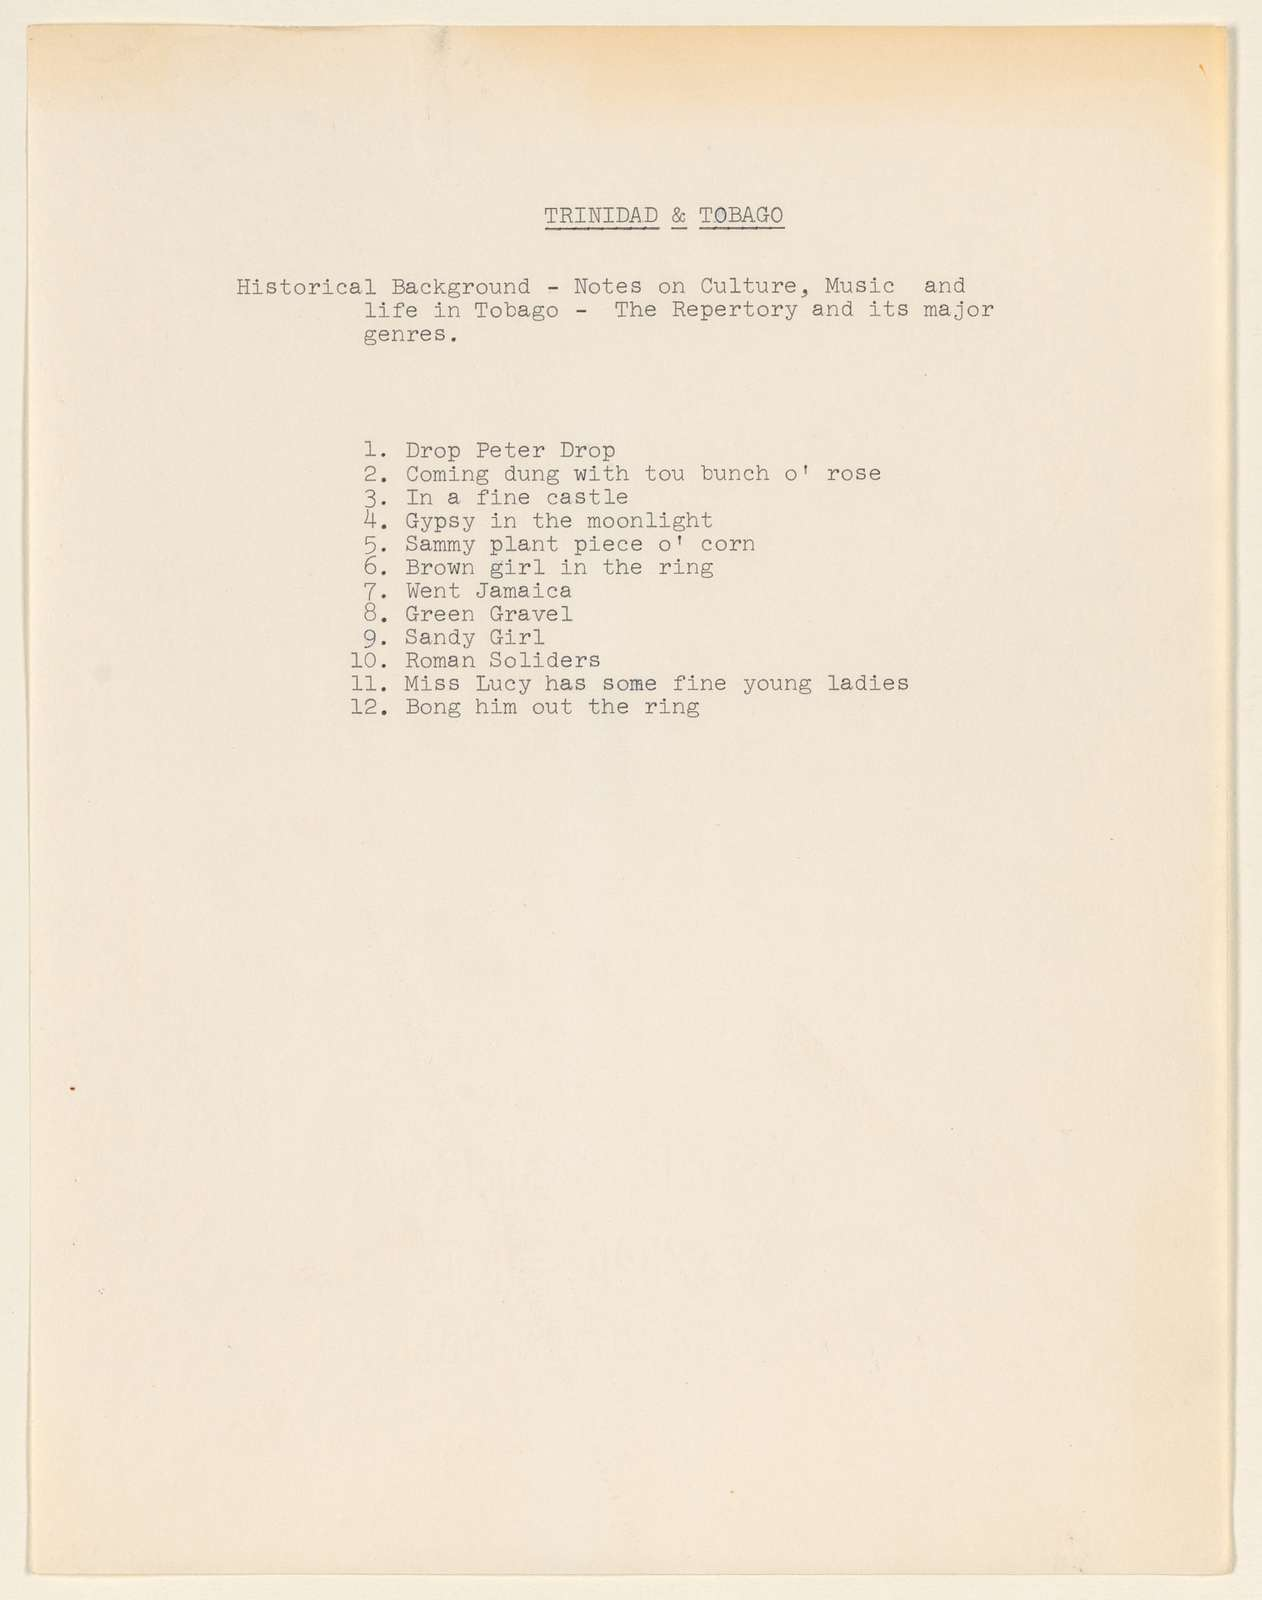 Alan Lomax Collection, Manuscripts, Brown Girl in the Ring, 1997